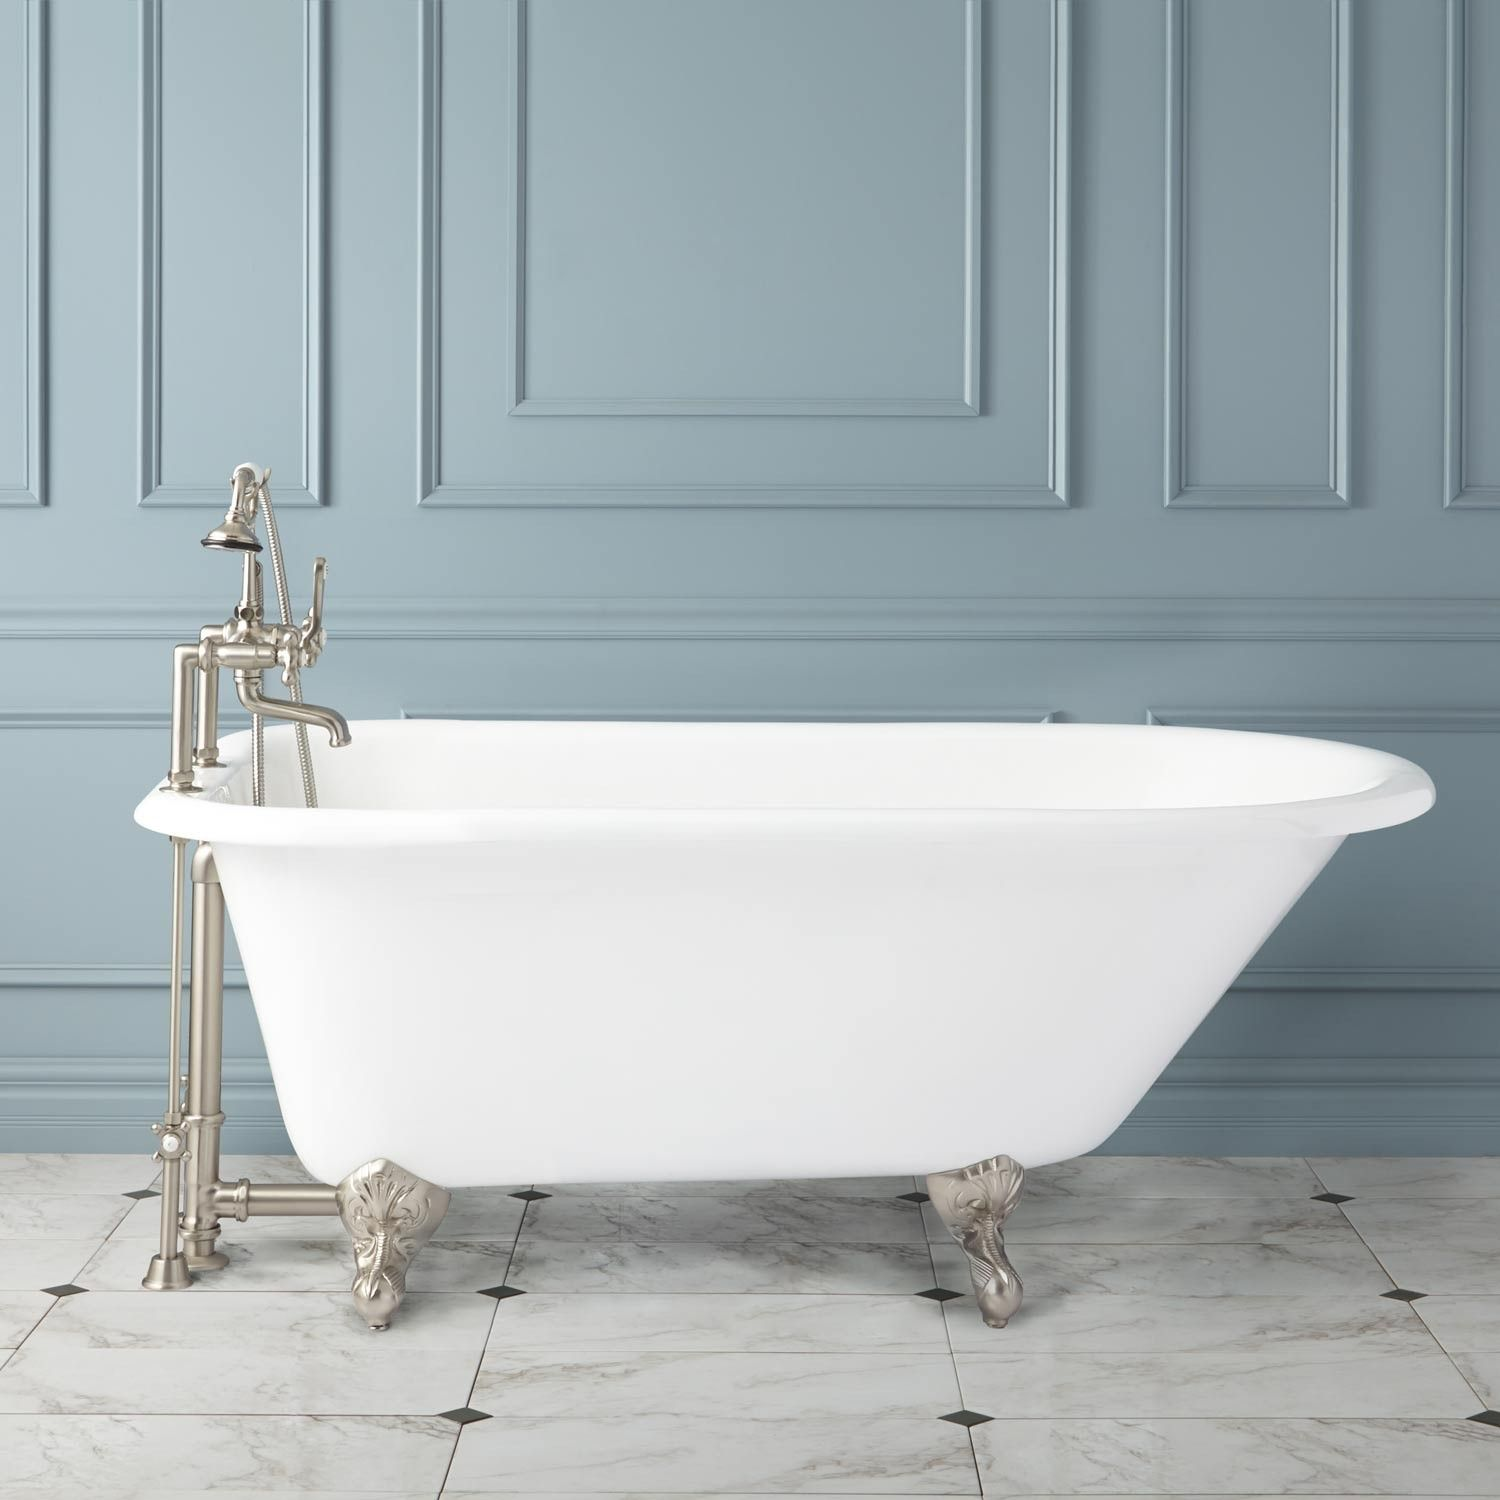 Celine cast iron clawfoot tub tubs iron and bath